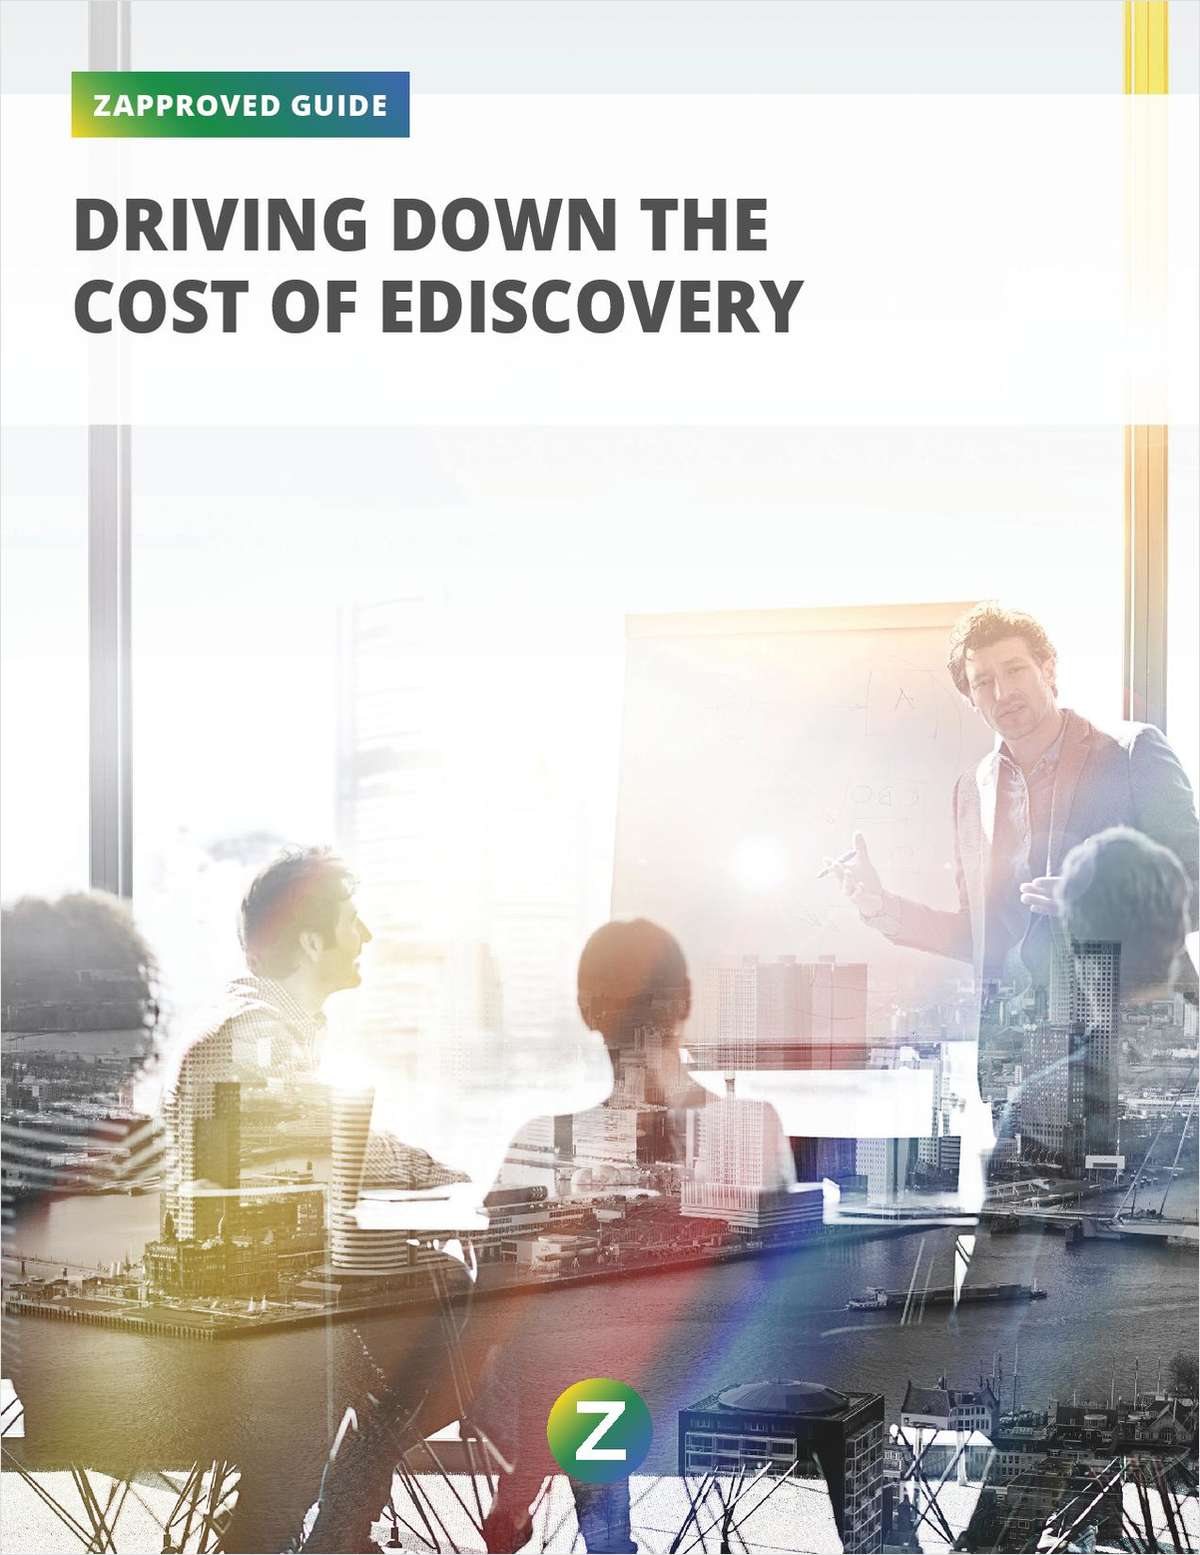 Driving Down the Cost of Ediscovery